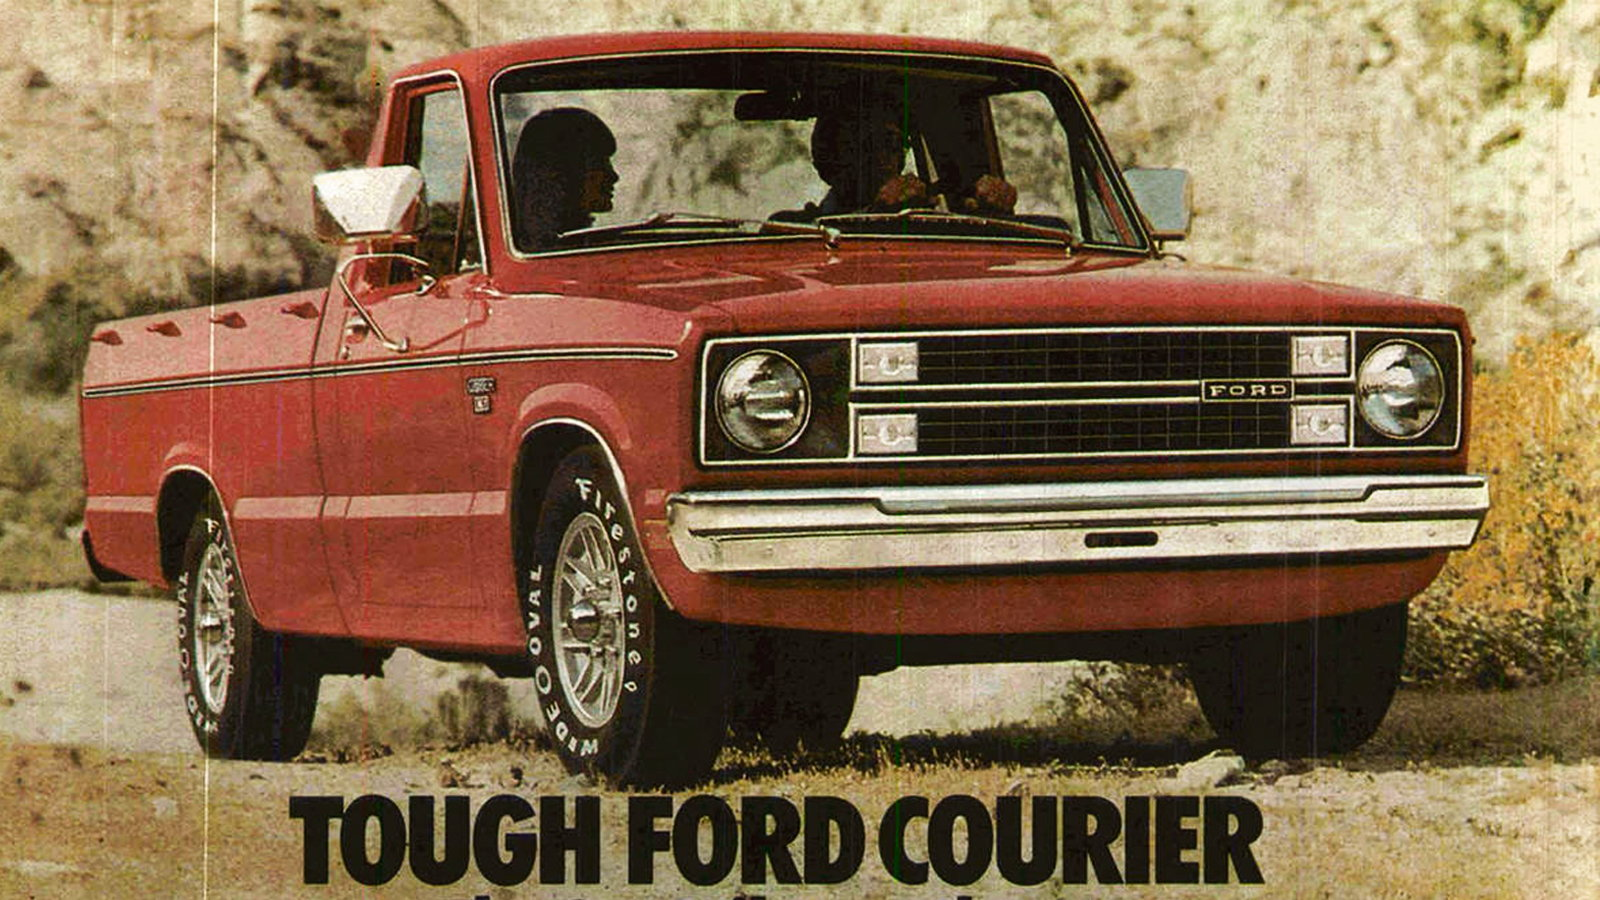 Breaking News: 2022 Ford Courier Designs Leaked